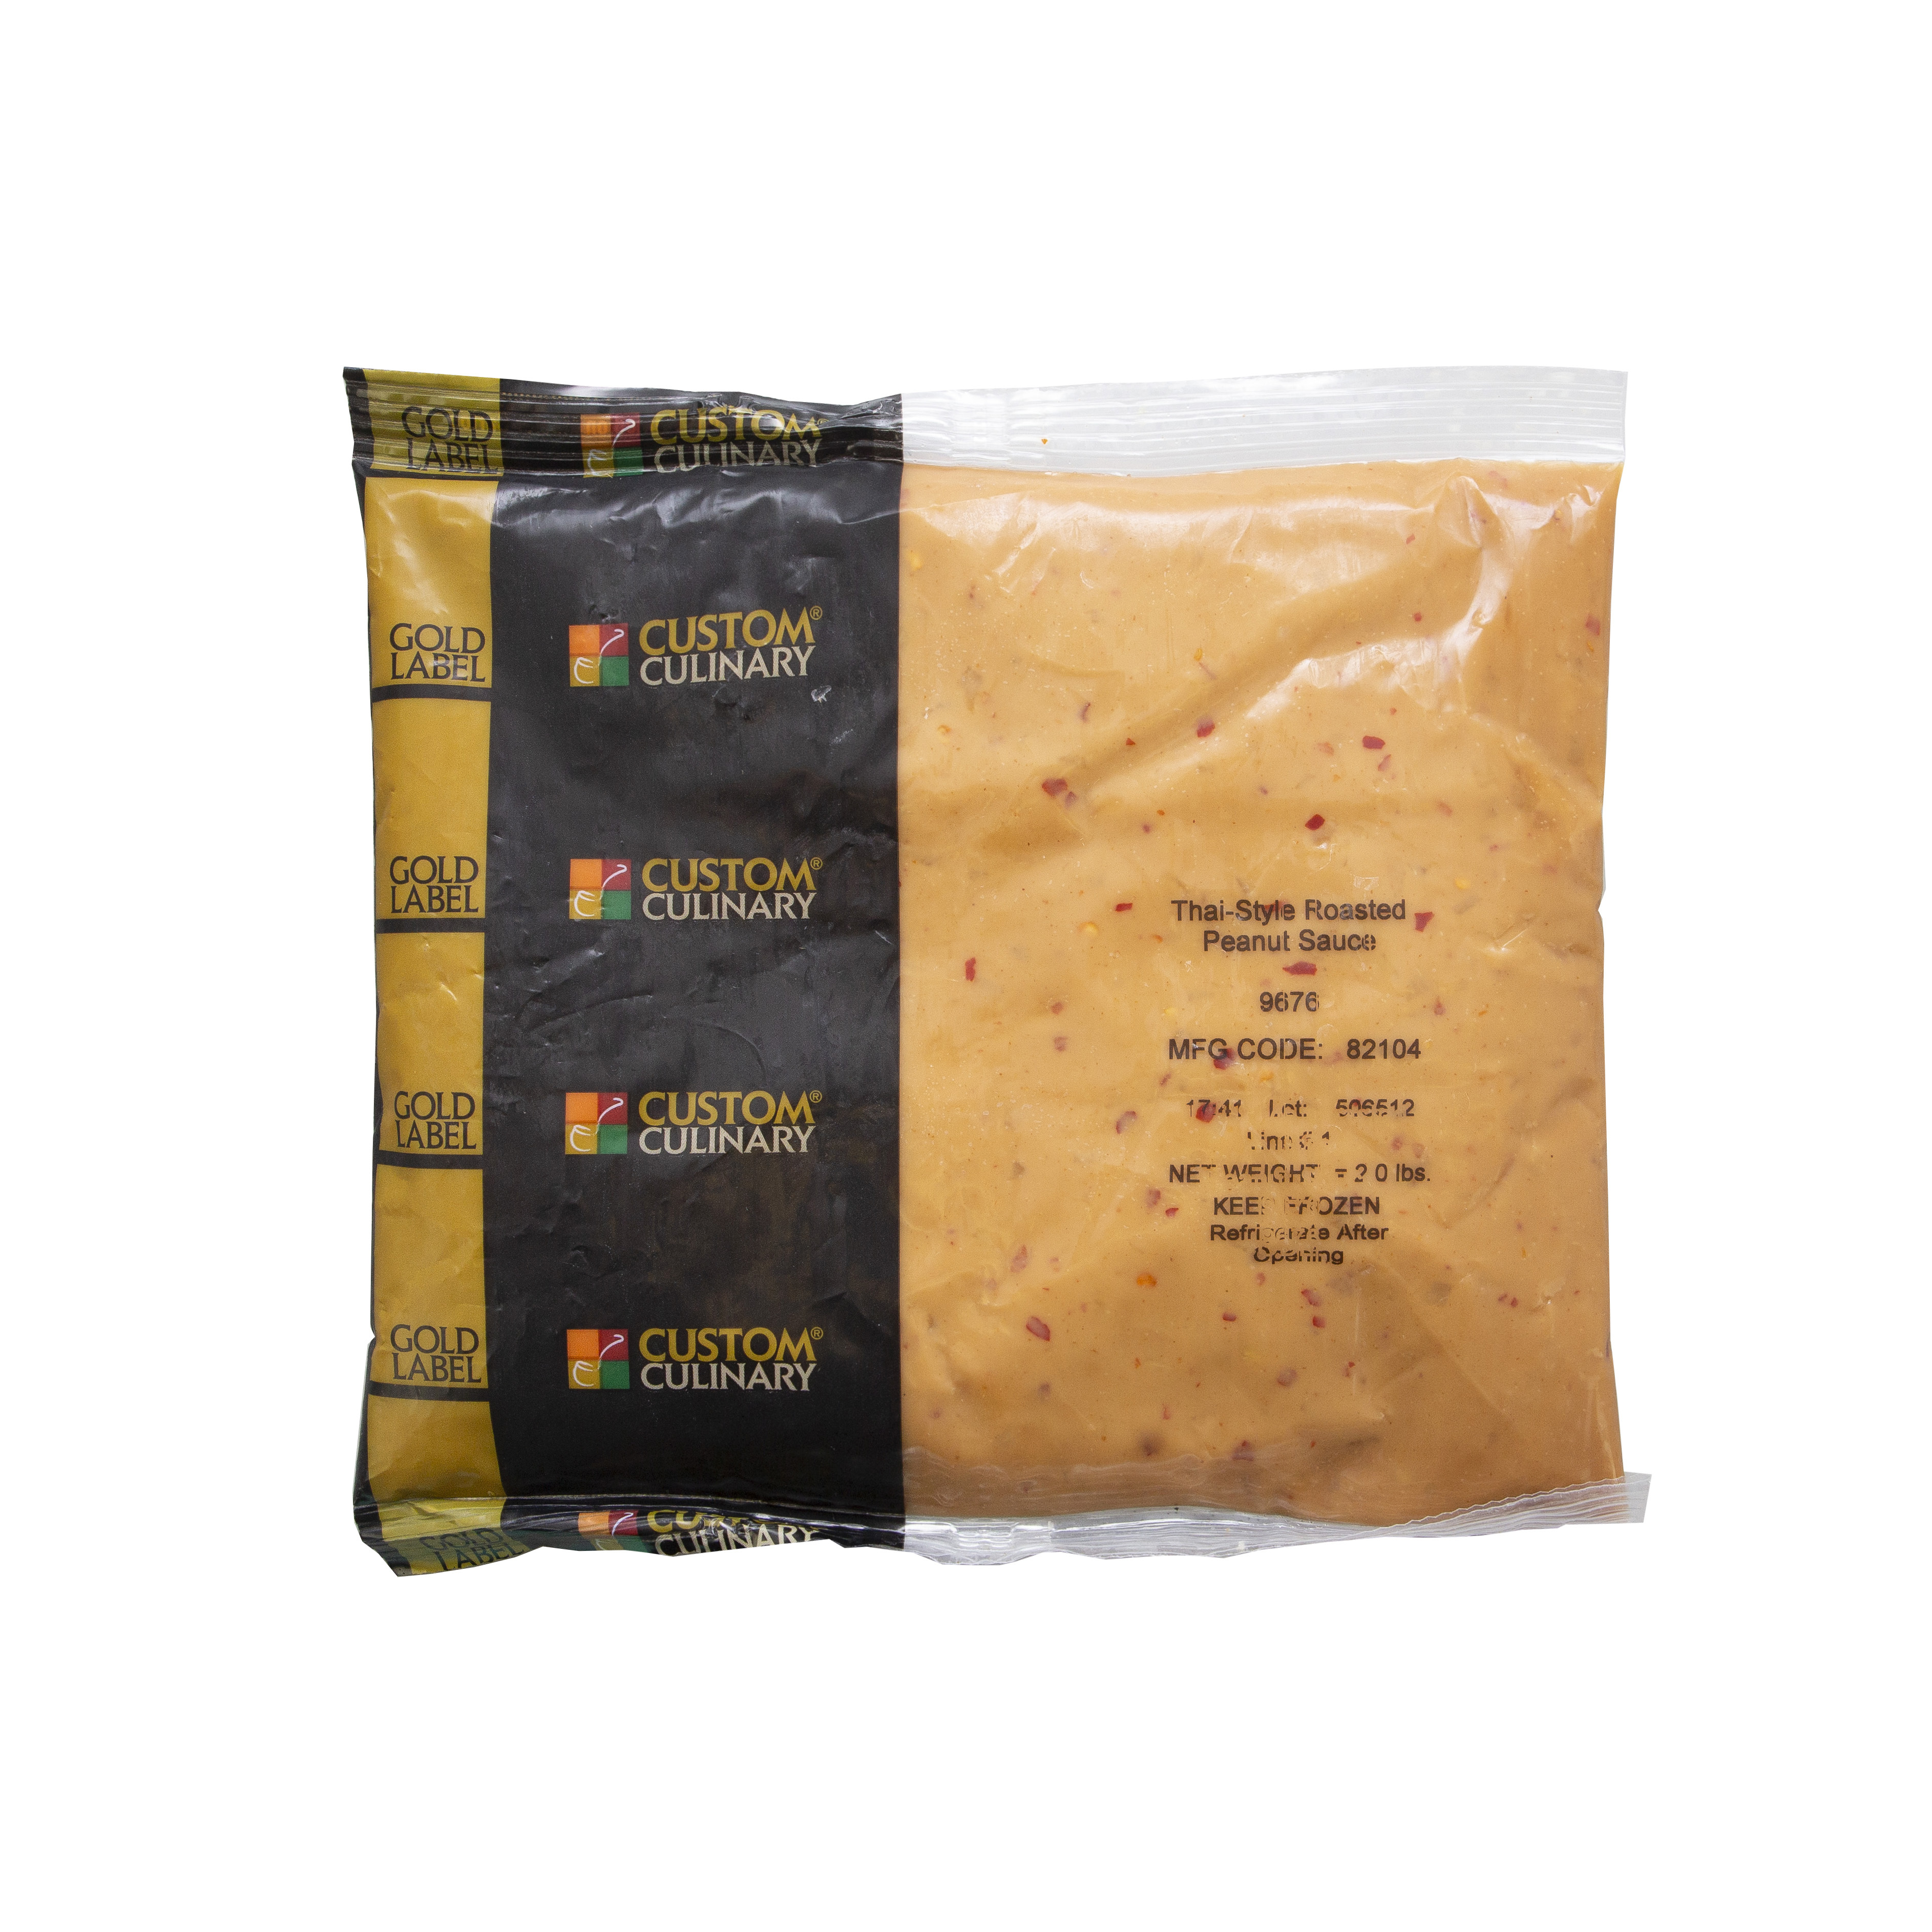 9676 - GOLD LABEL Ready-To-Use Frozen Thai- Style Roasted Peanut Sauce